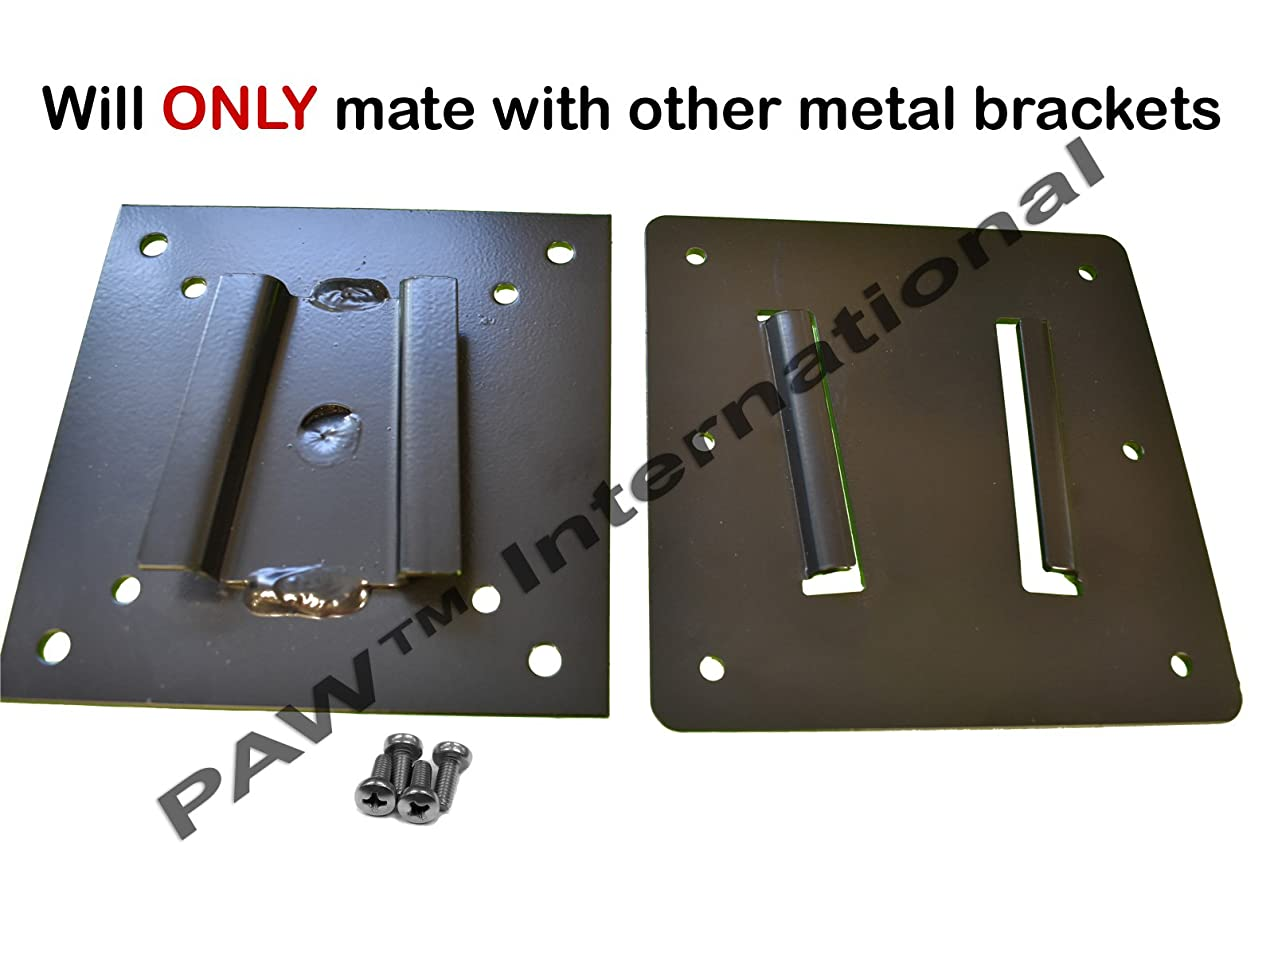 STEEL 2 Piece TV Bracket set for Campers/RVs-(Not PAW International Polymer Brackets)- ljlexgldpers4863